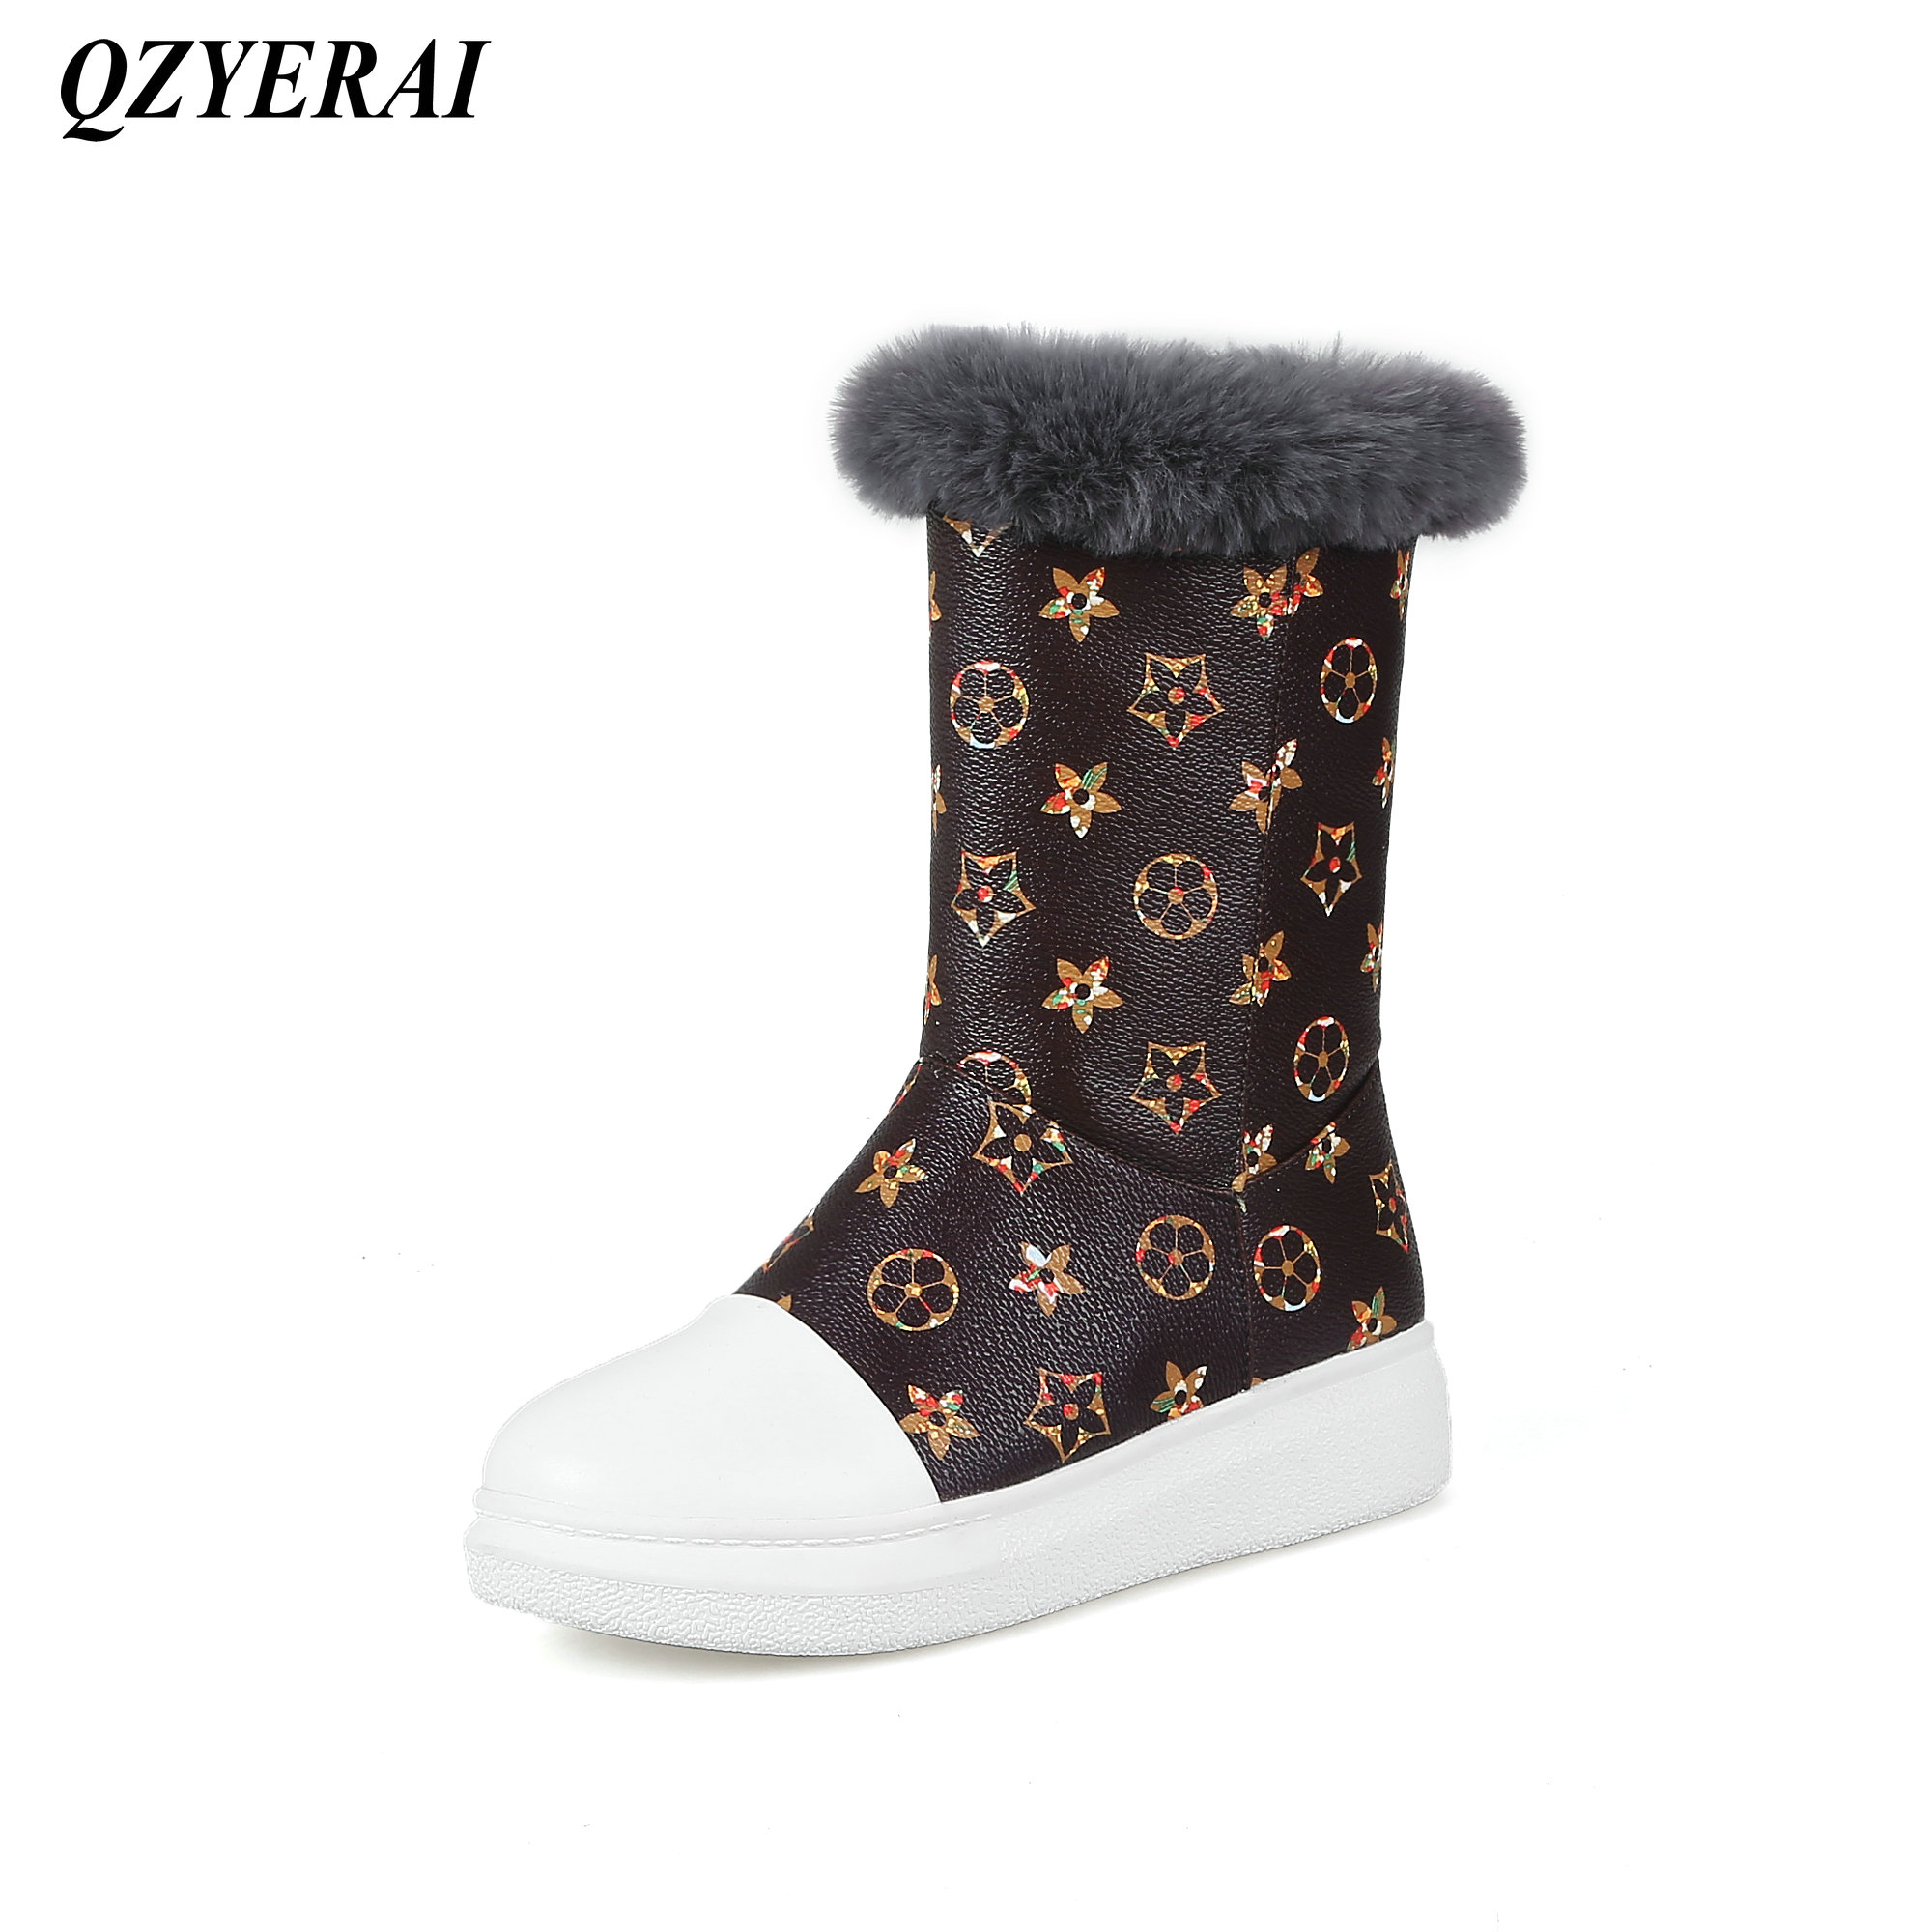 QZYERAI Winter super warm ladies comfortable snow boots fashionable font b womens b font font b